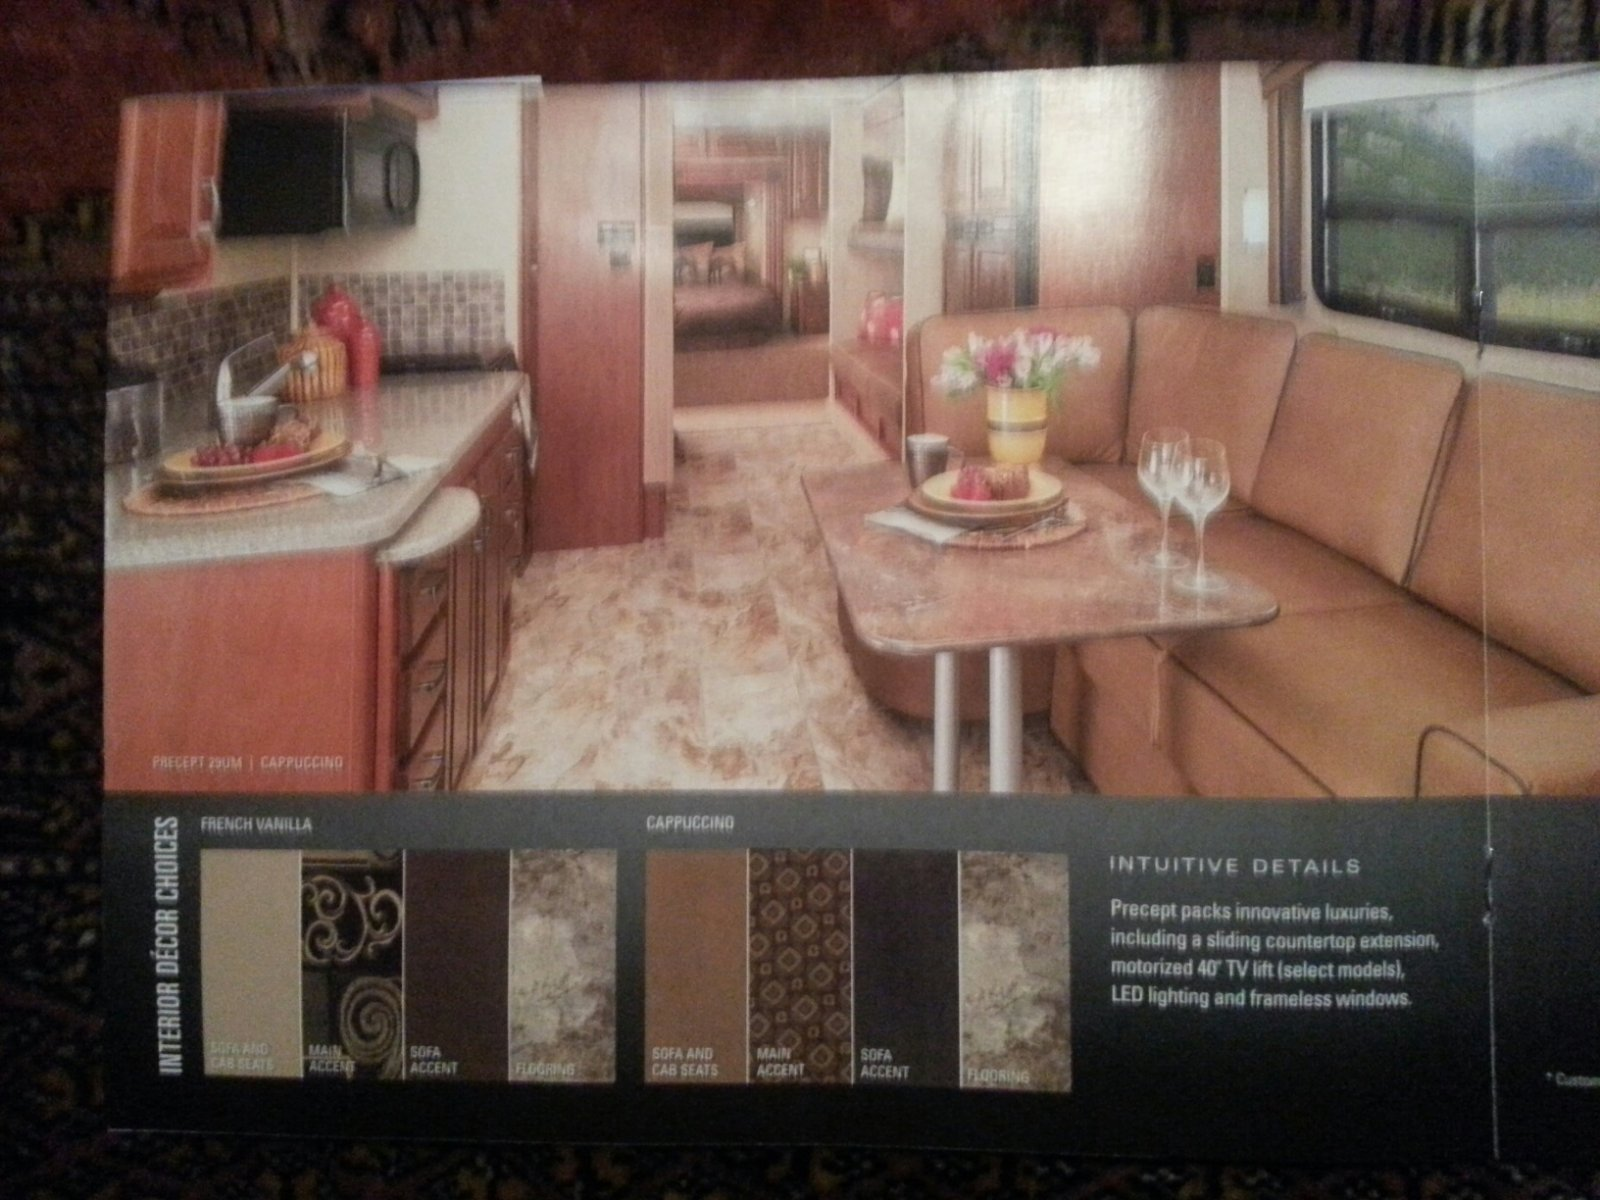 Click image for larger version  Name:Precept - Brochure - Inside Picture Kitchen.jpg Views:80 Size:257.0 KB ID:74377